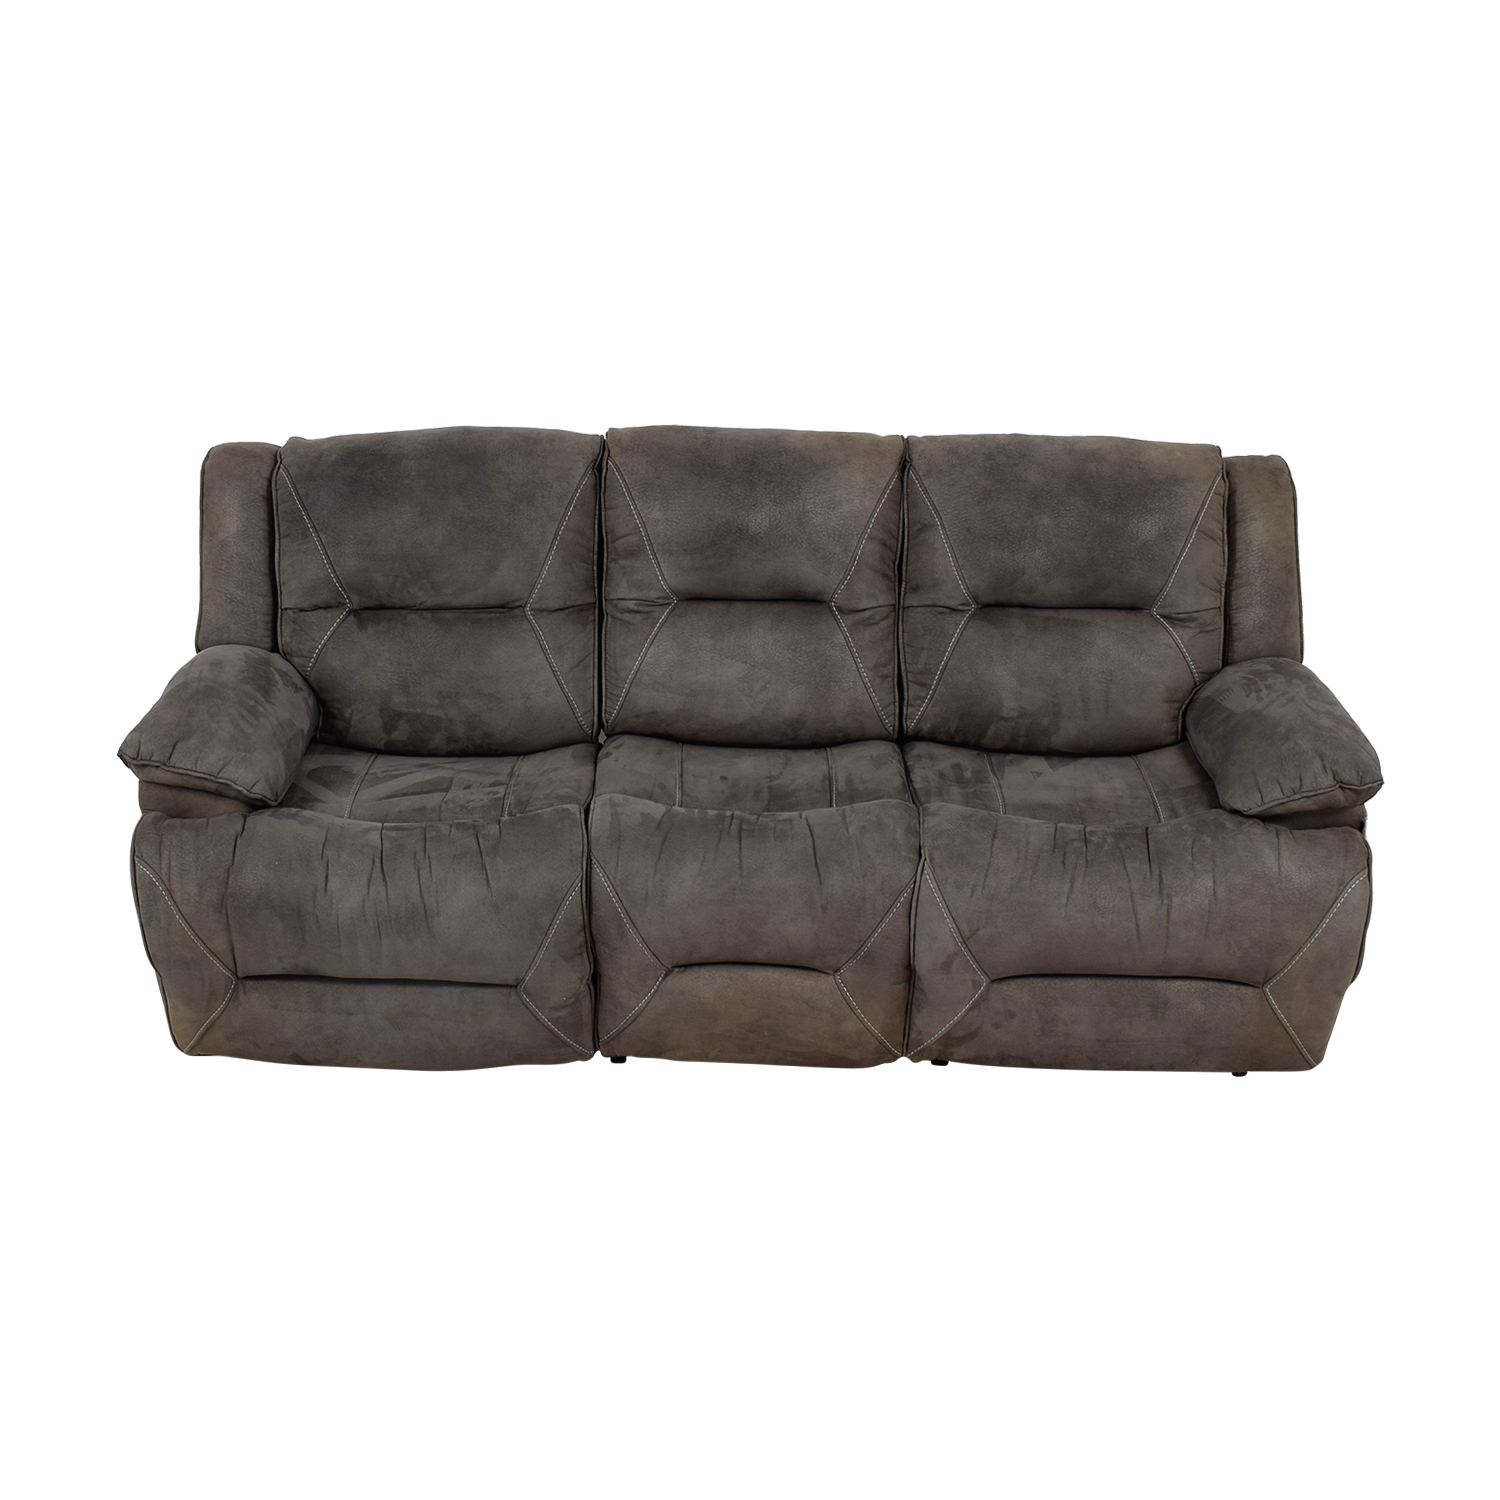 Raymour & Flanigan Raymour & Flanigan Grey Reclining Sofa grey